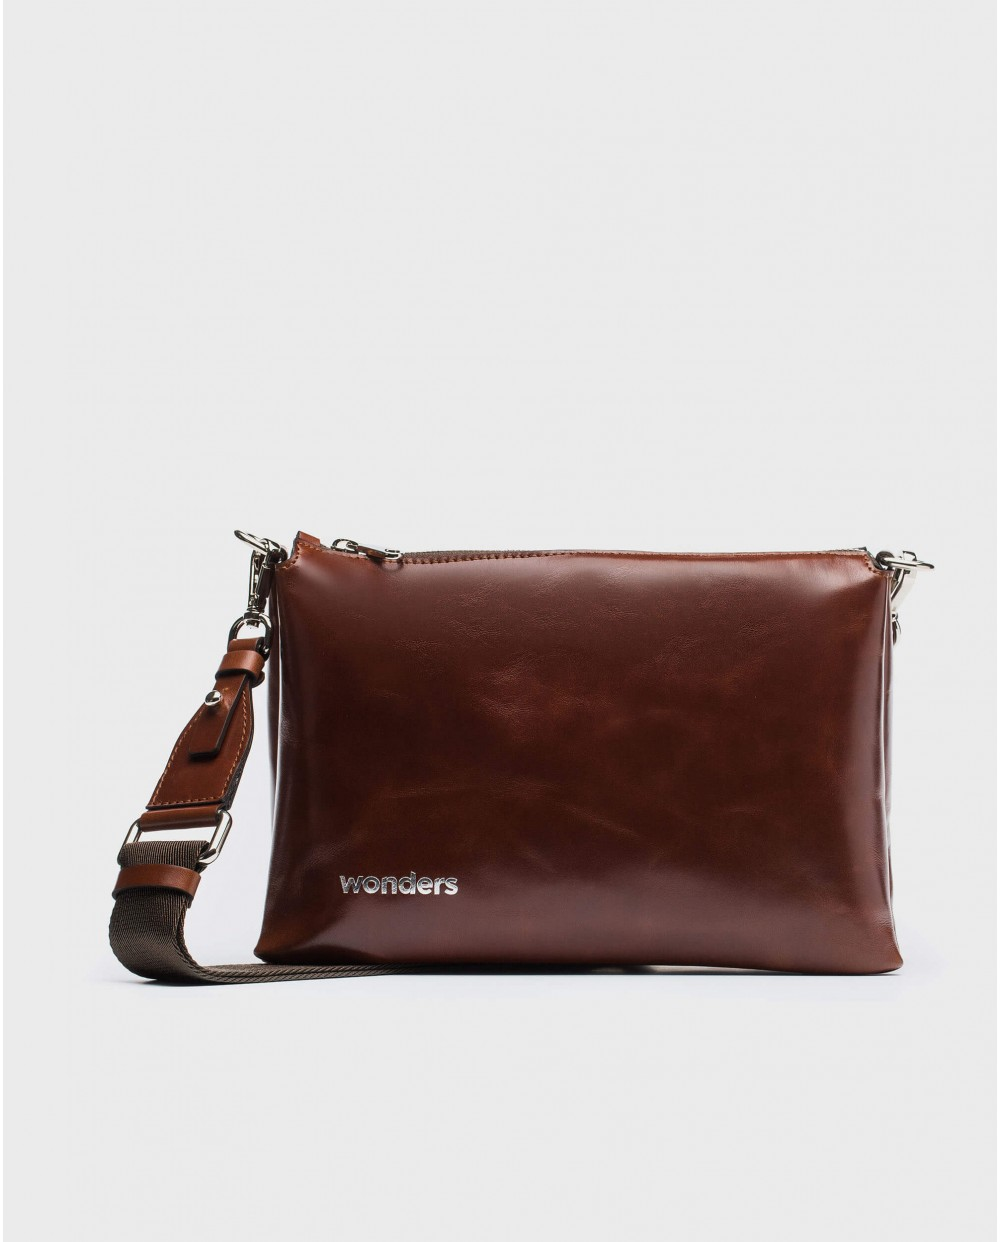 Wonders-Bags 30% OFF-Rectangular crossbody bag